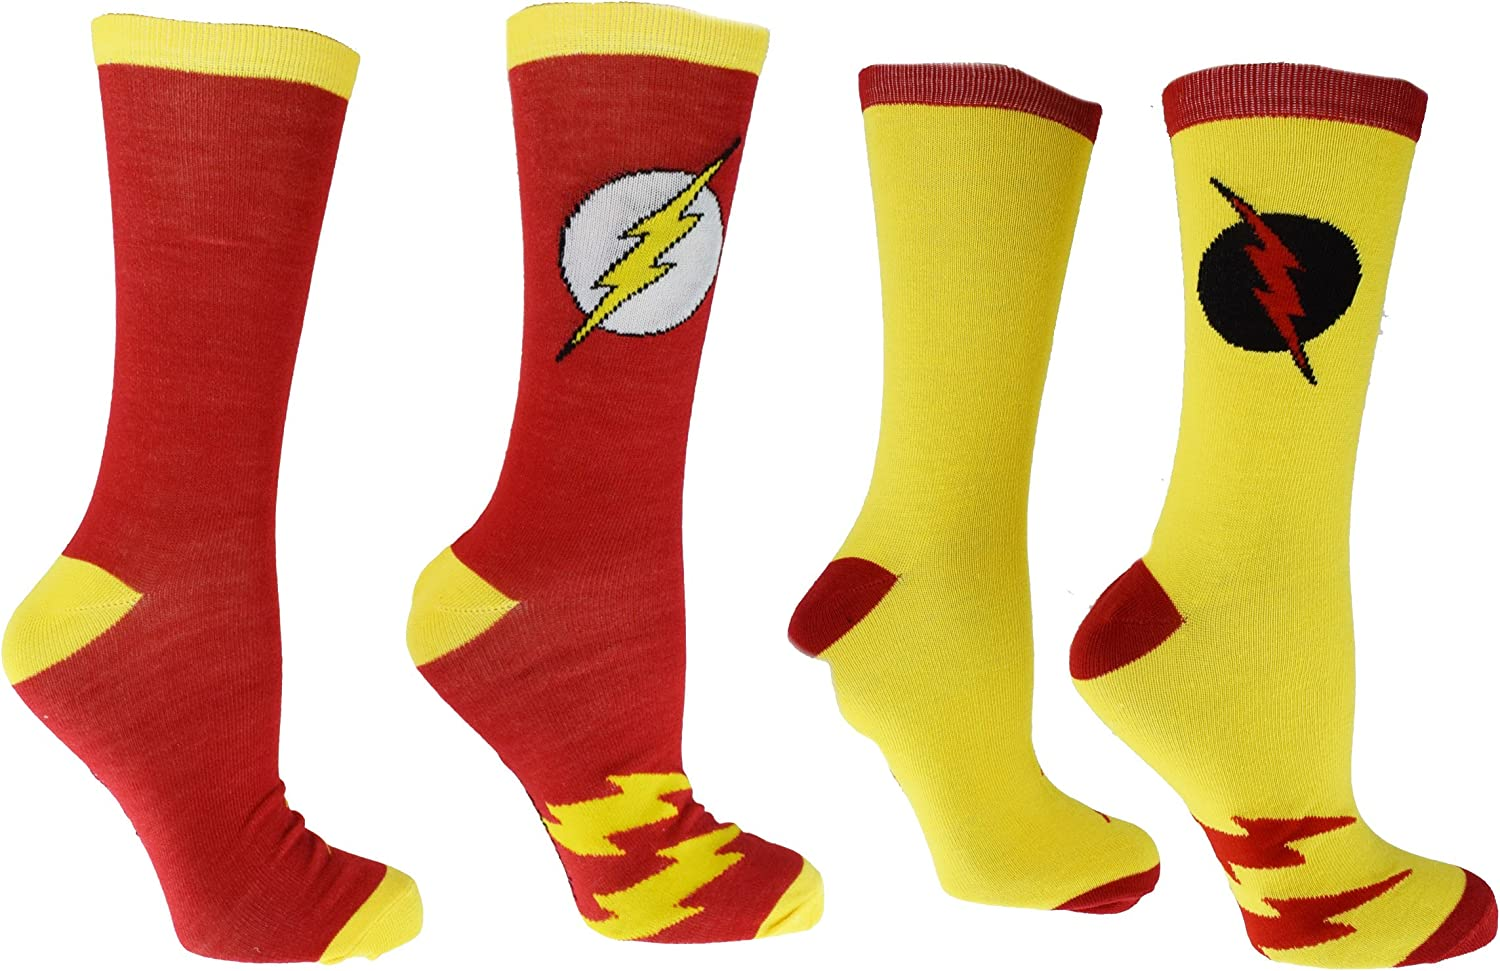 The Flash Casual Crew Sock 5 Pair 5 Pack Shoe Size 8-12 DC Comics